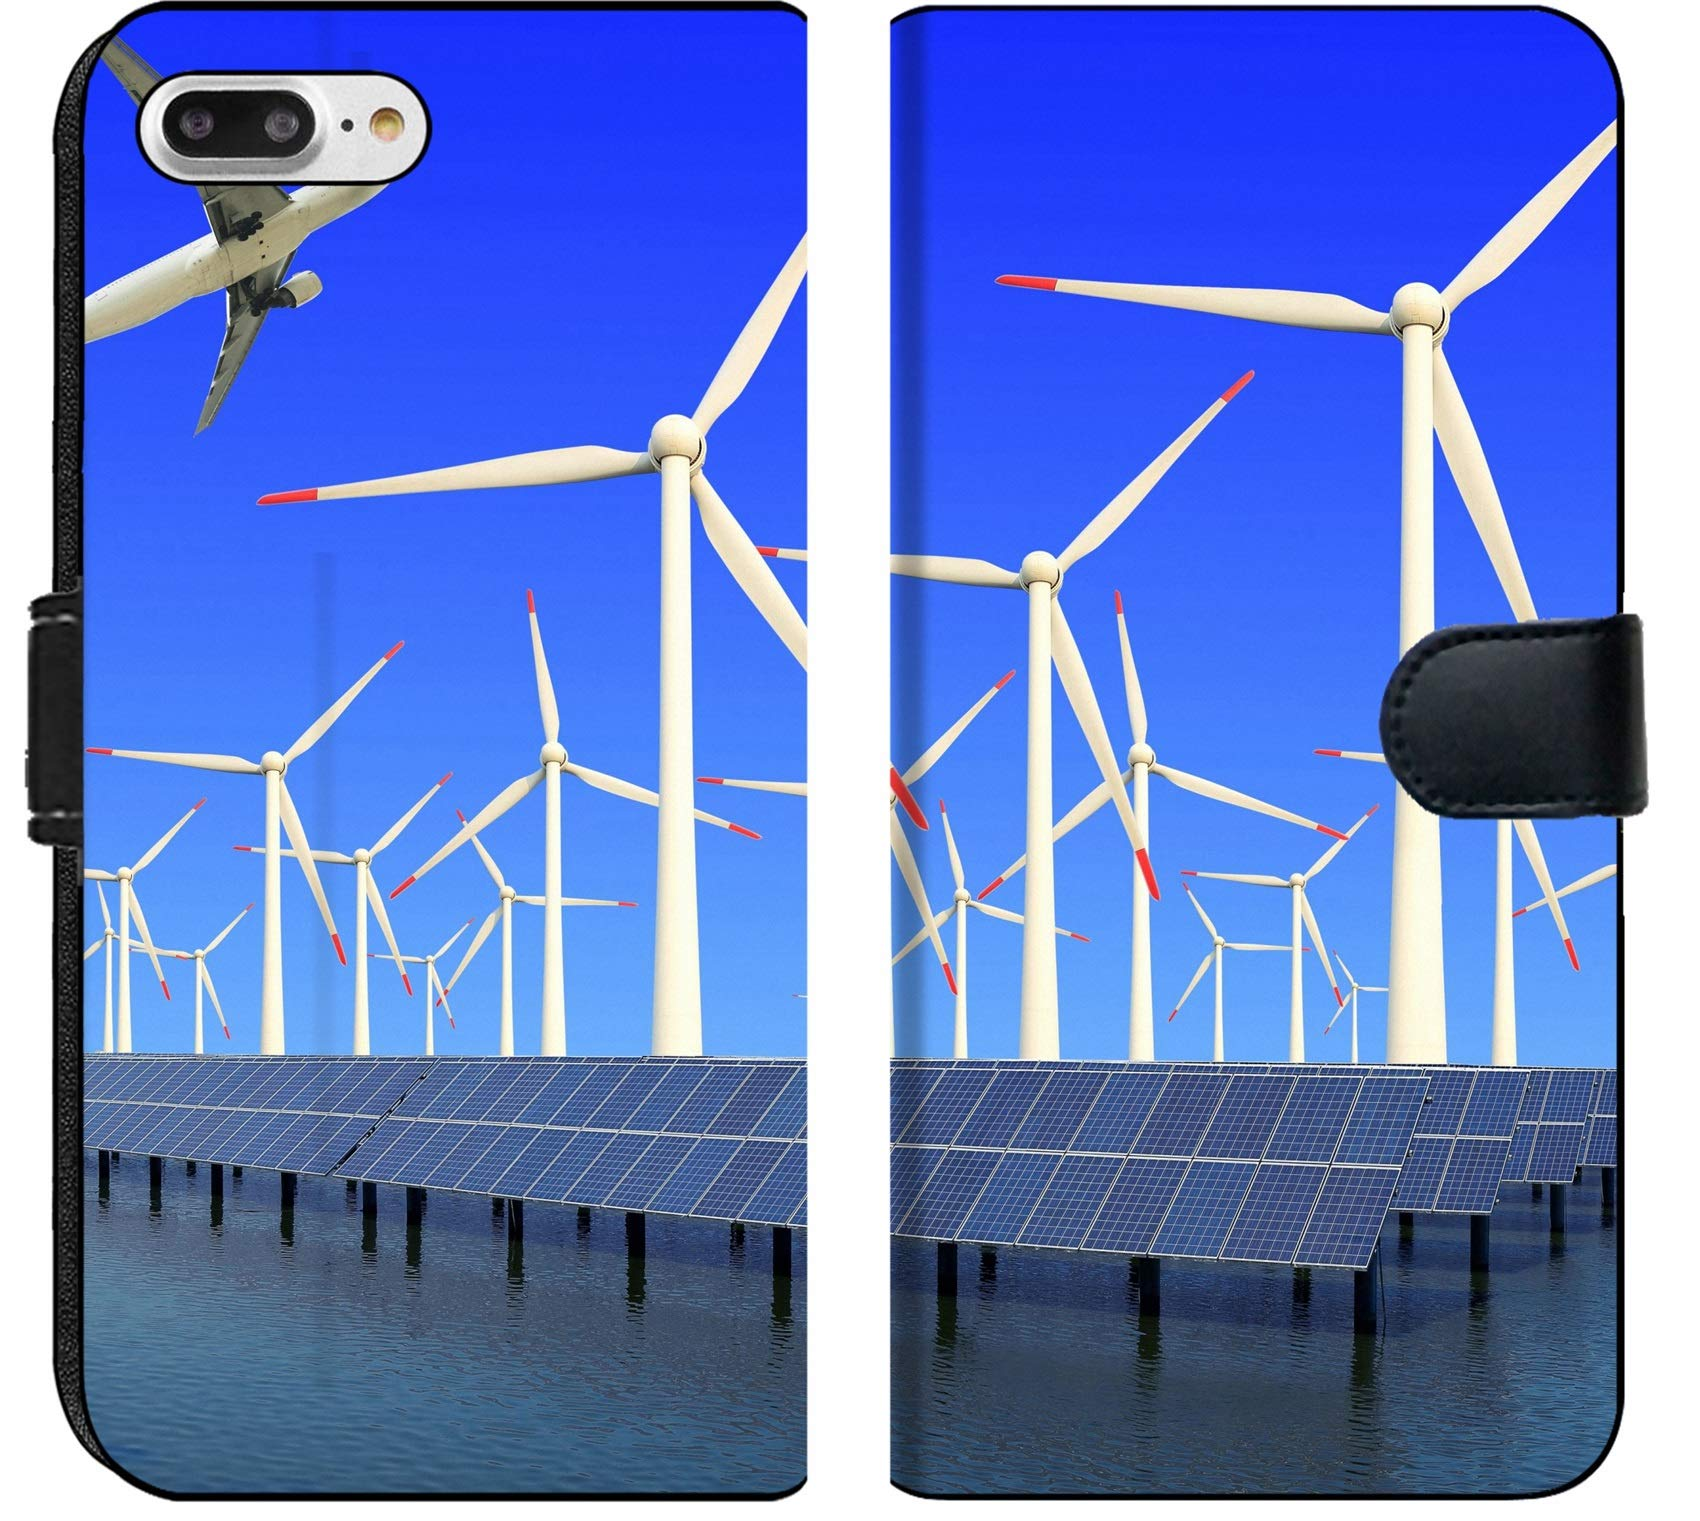 Apple iPhone 7 Plus and iPhone 8 Plus Flip Fabric Wallet Case Image ID 19576484 Aircraft is Flying in eco Power of Wind turbines and Solar Panel at c